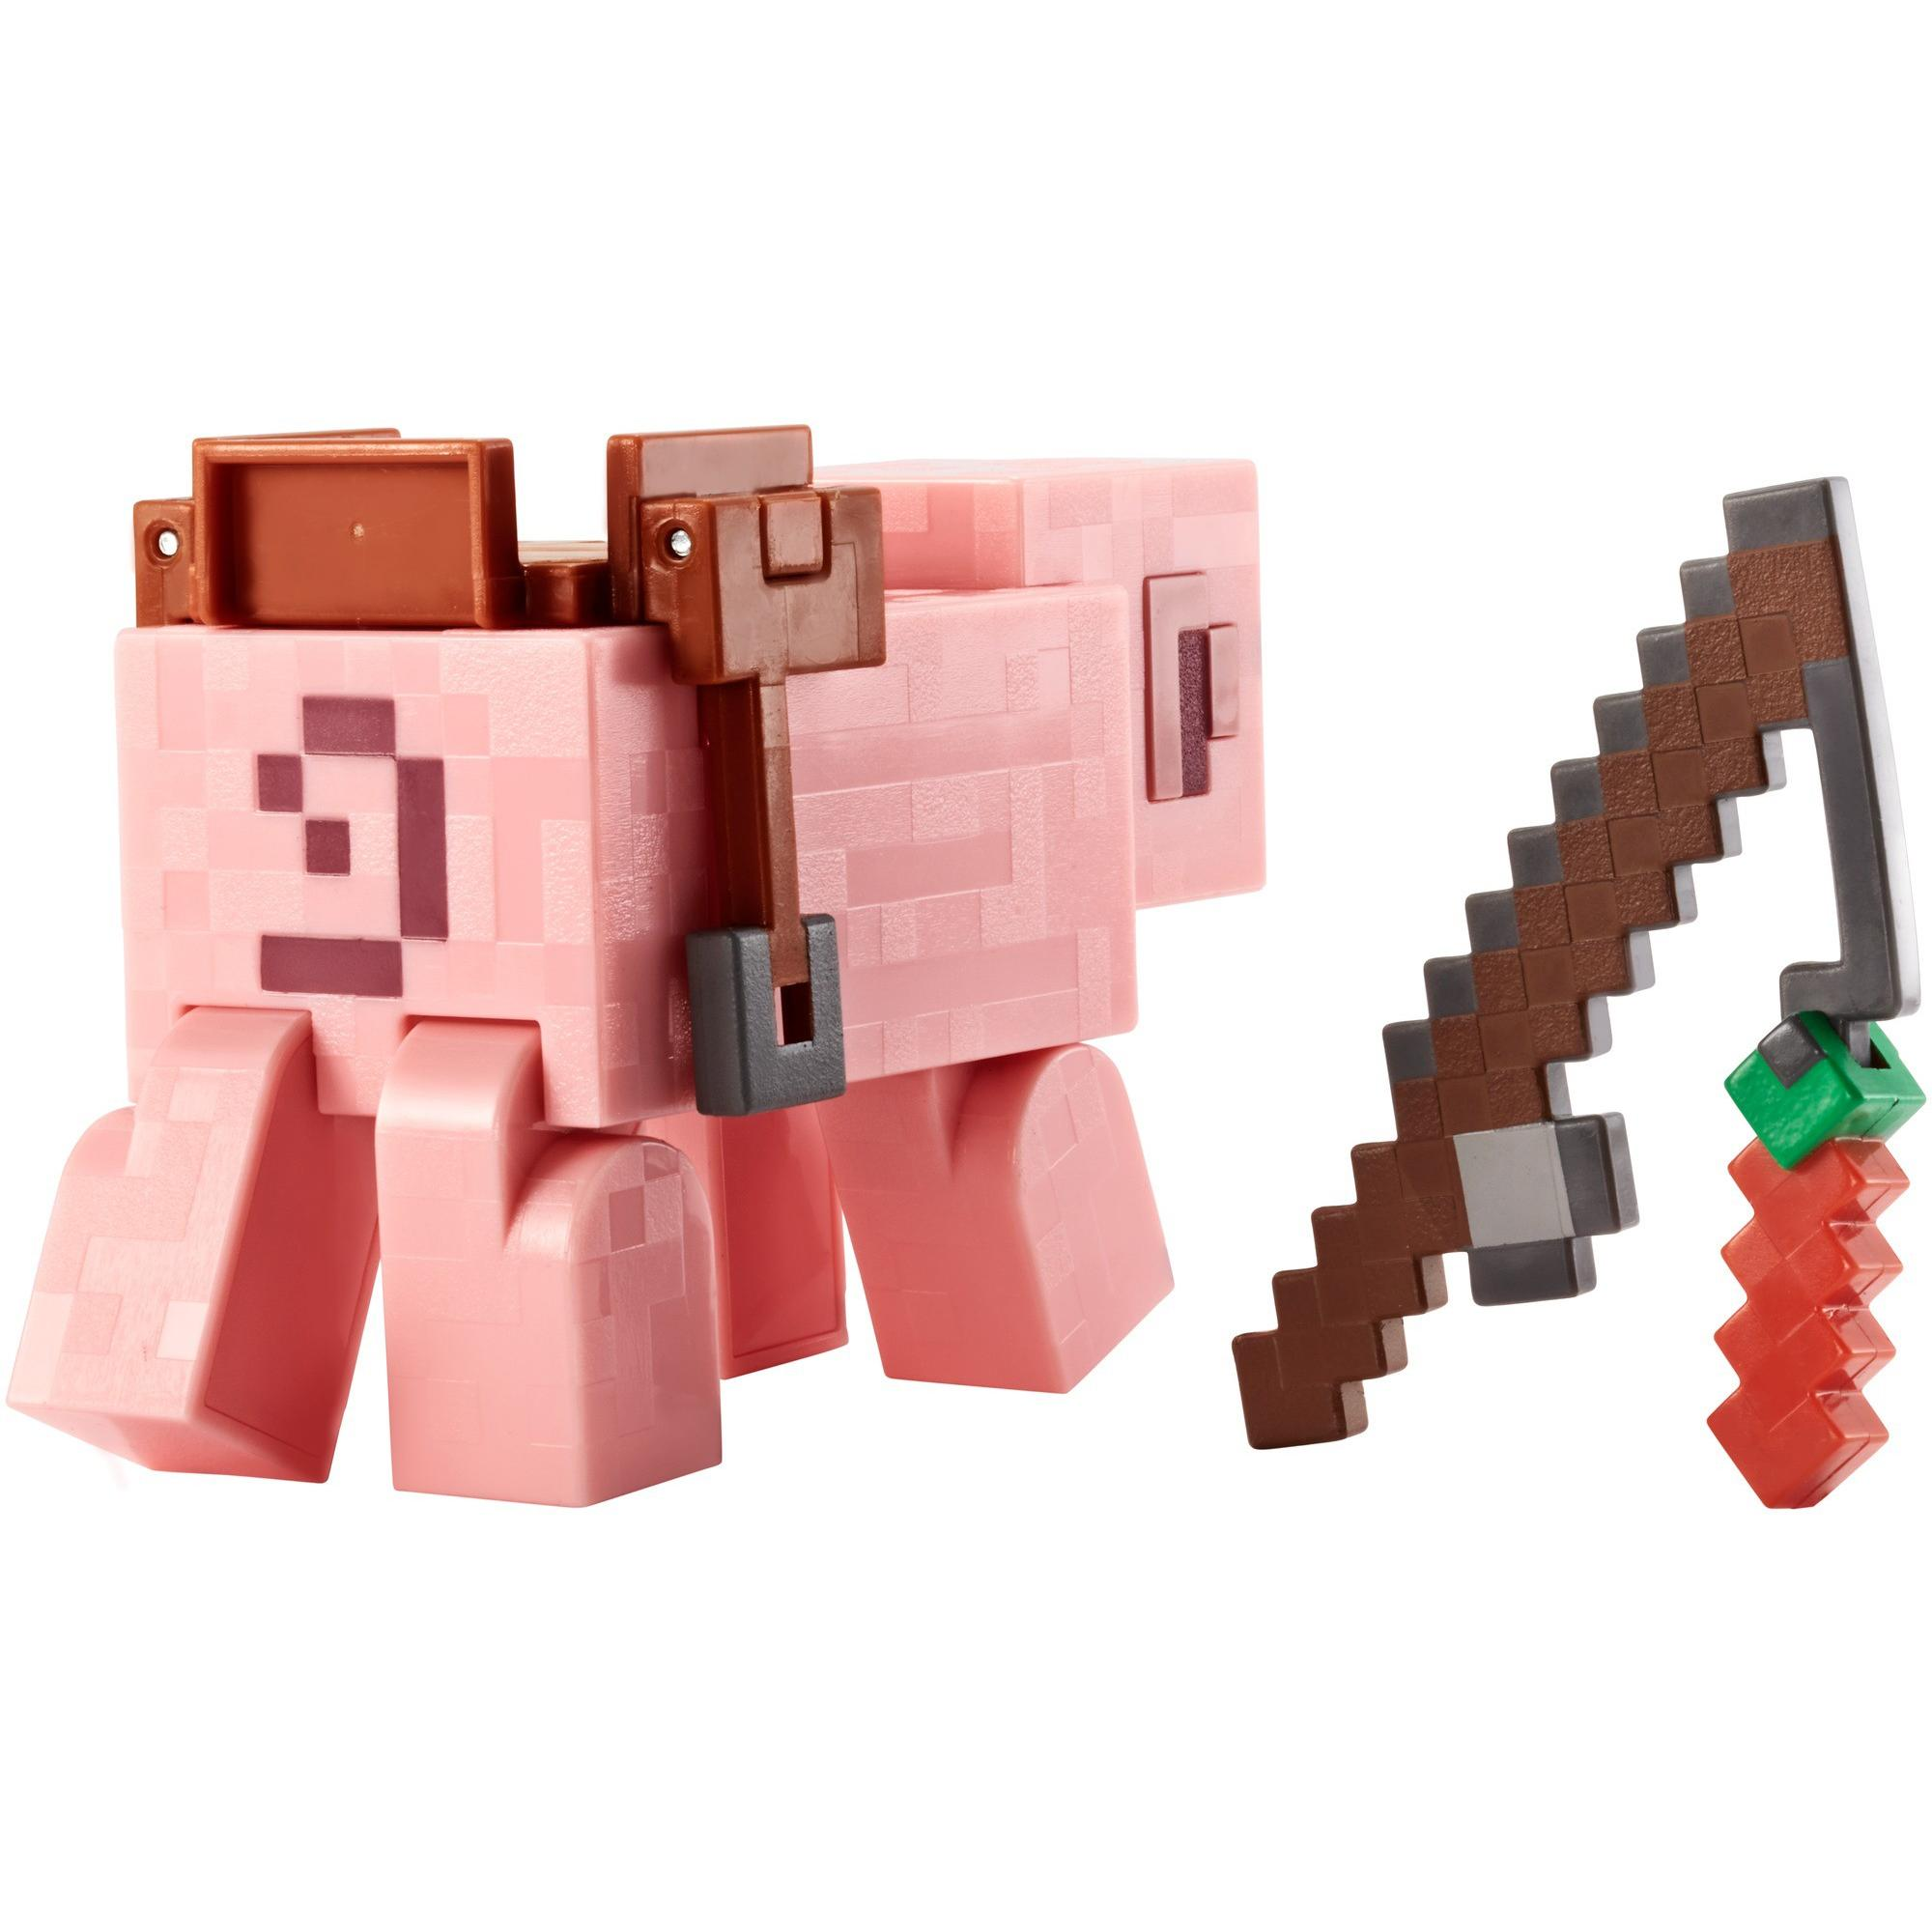 Minecraft Survival Mode 5 Inch Figure - Walmart.com